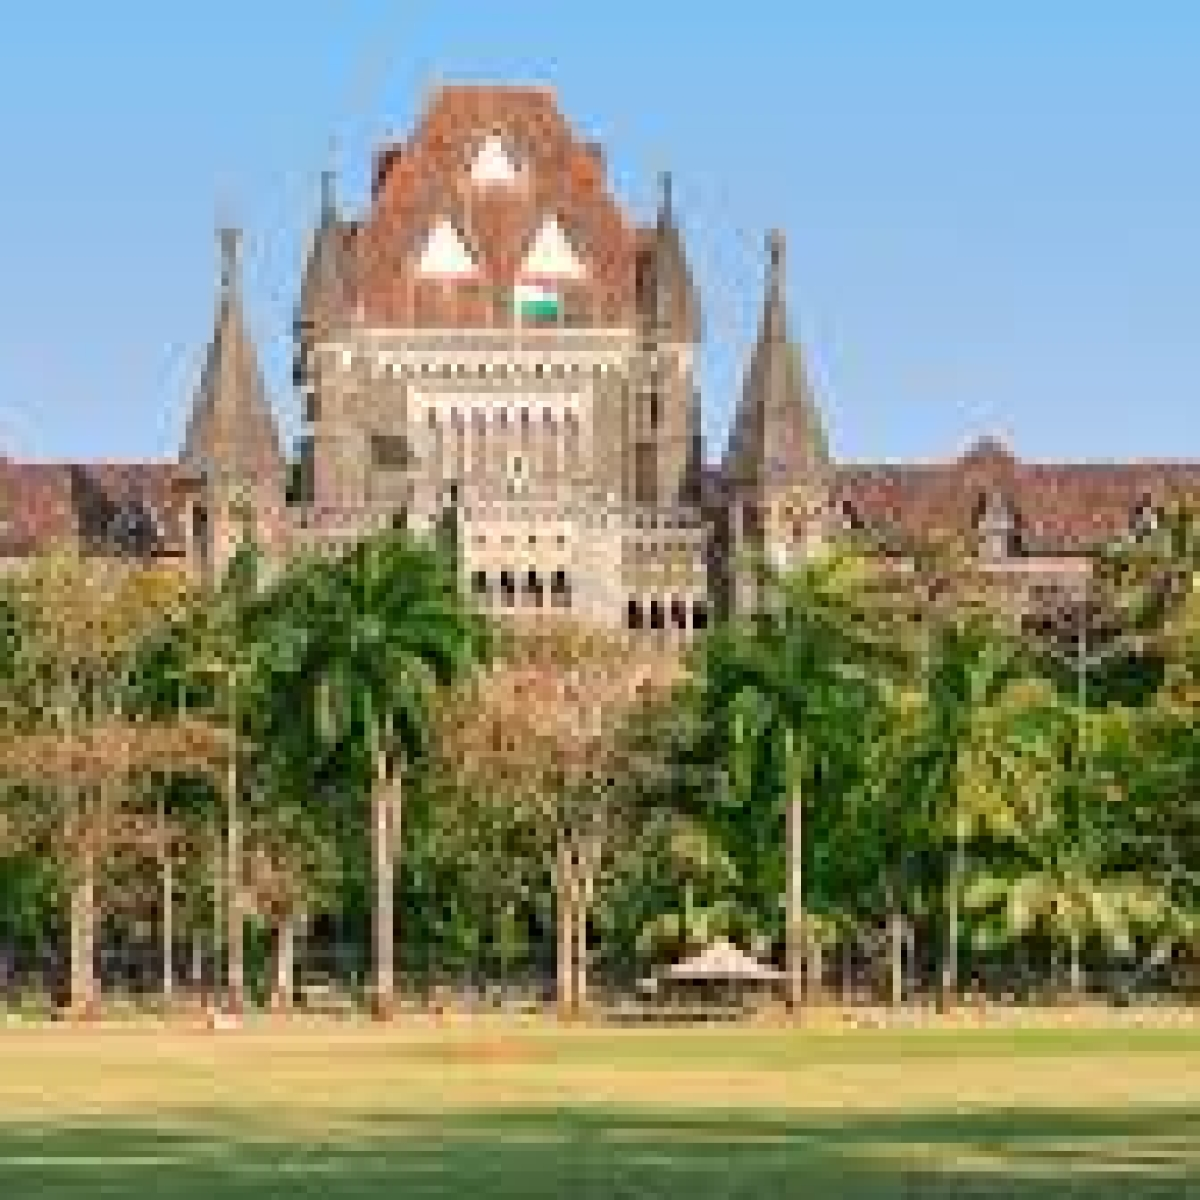 Do not use redeveloped buildings for quarantine: Bombay HC to BMC